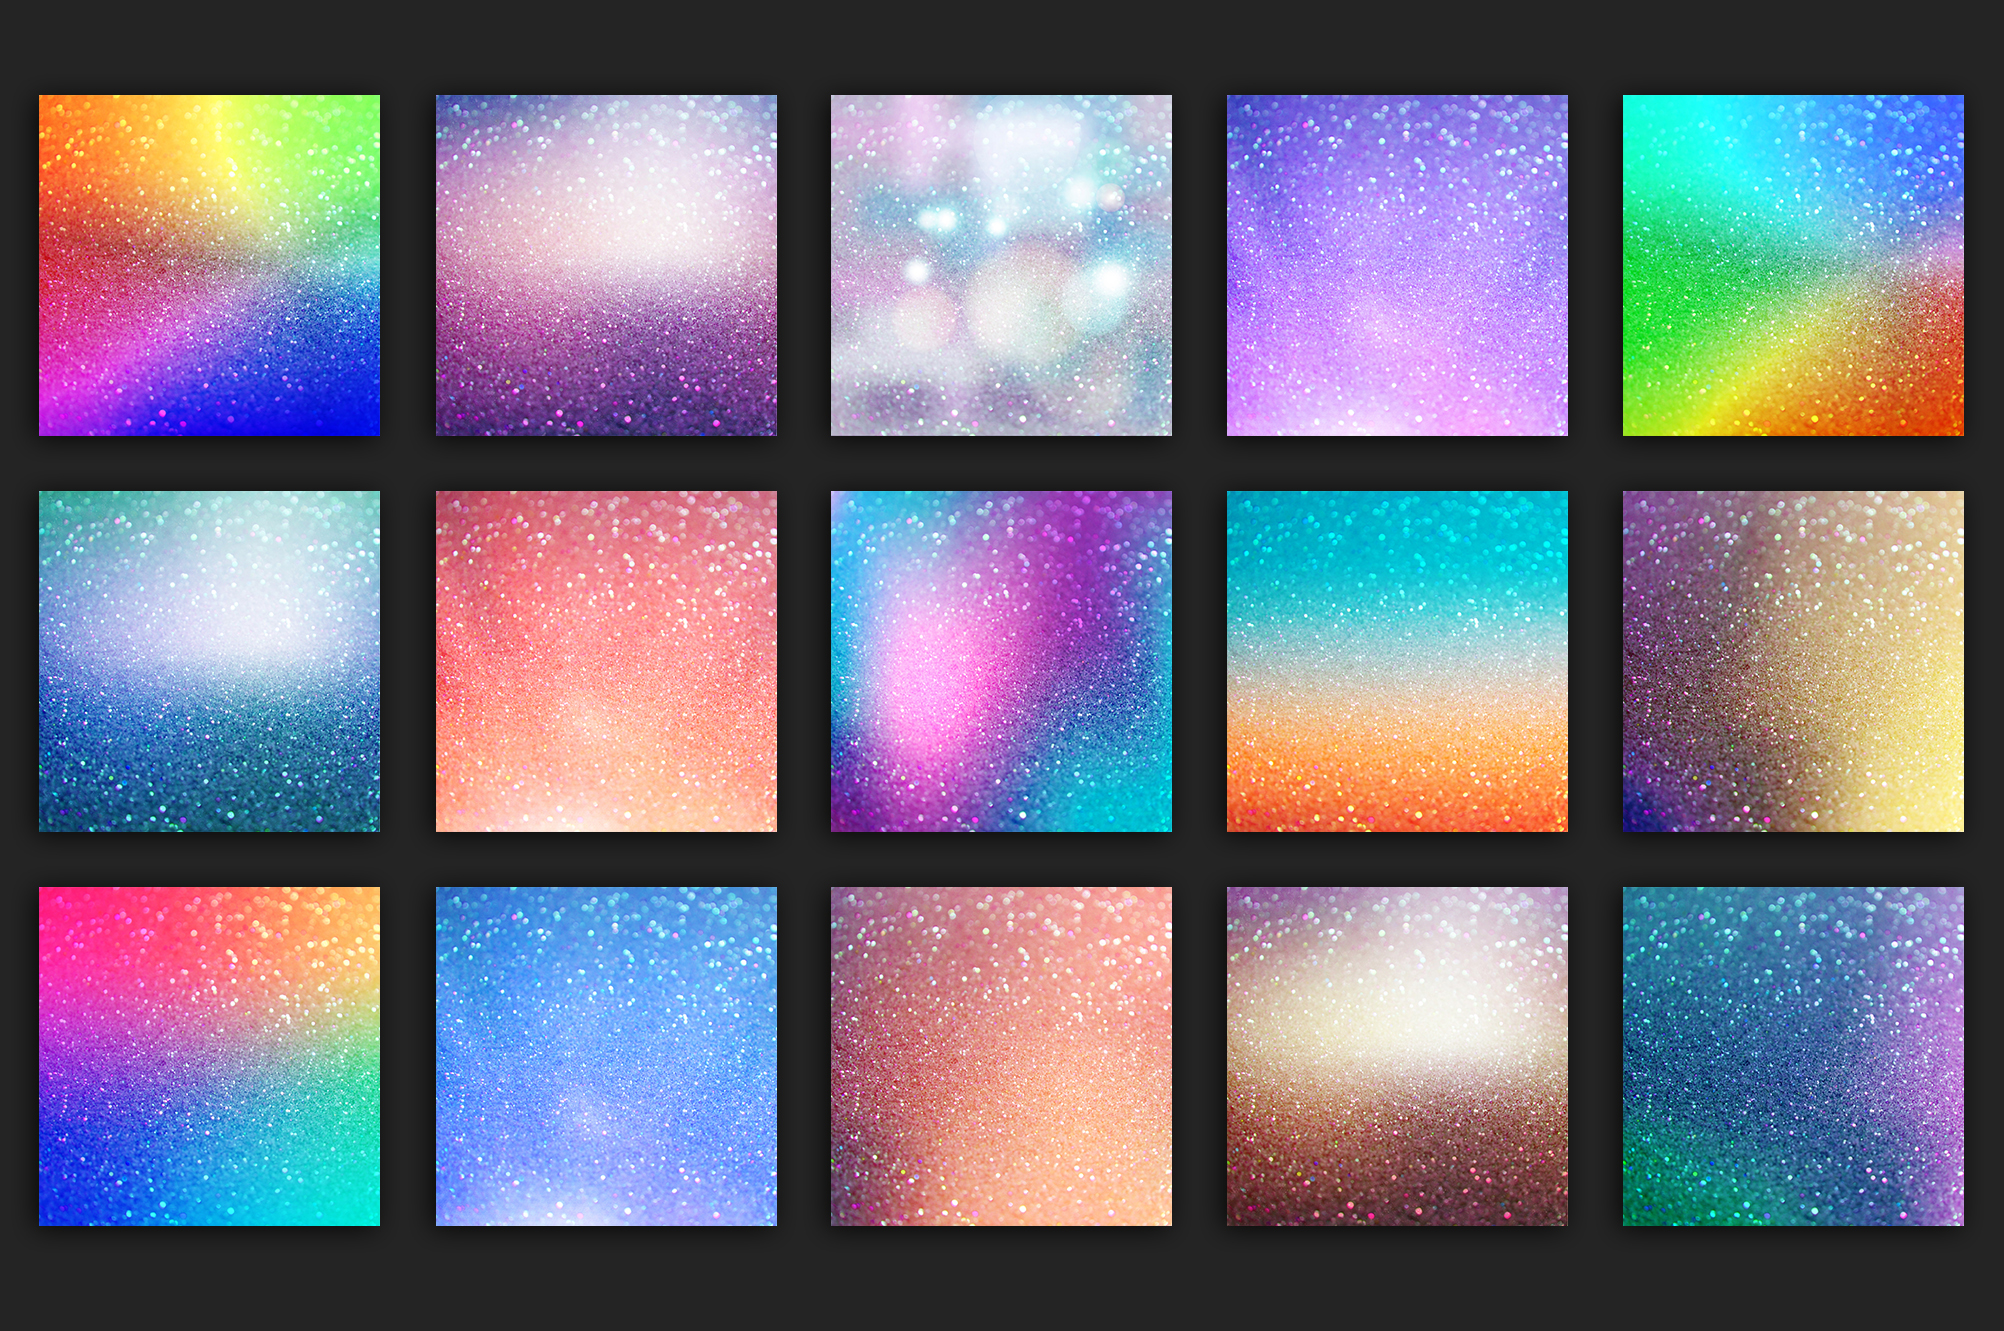 Iridescent Glitter and Foil Textures example image 12